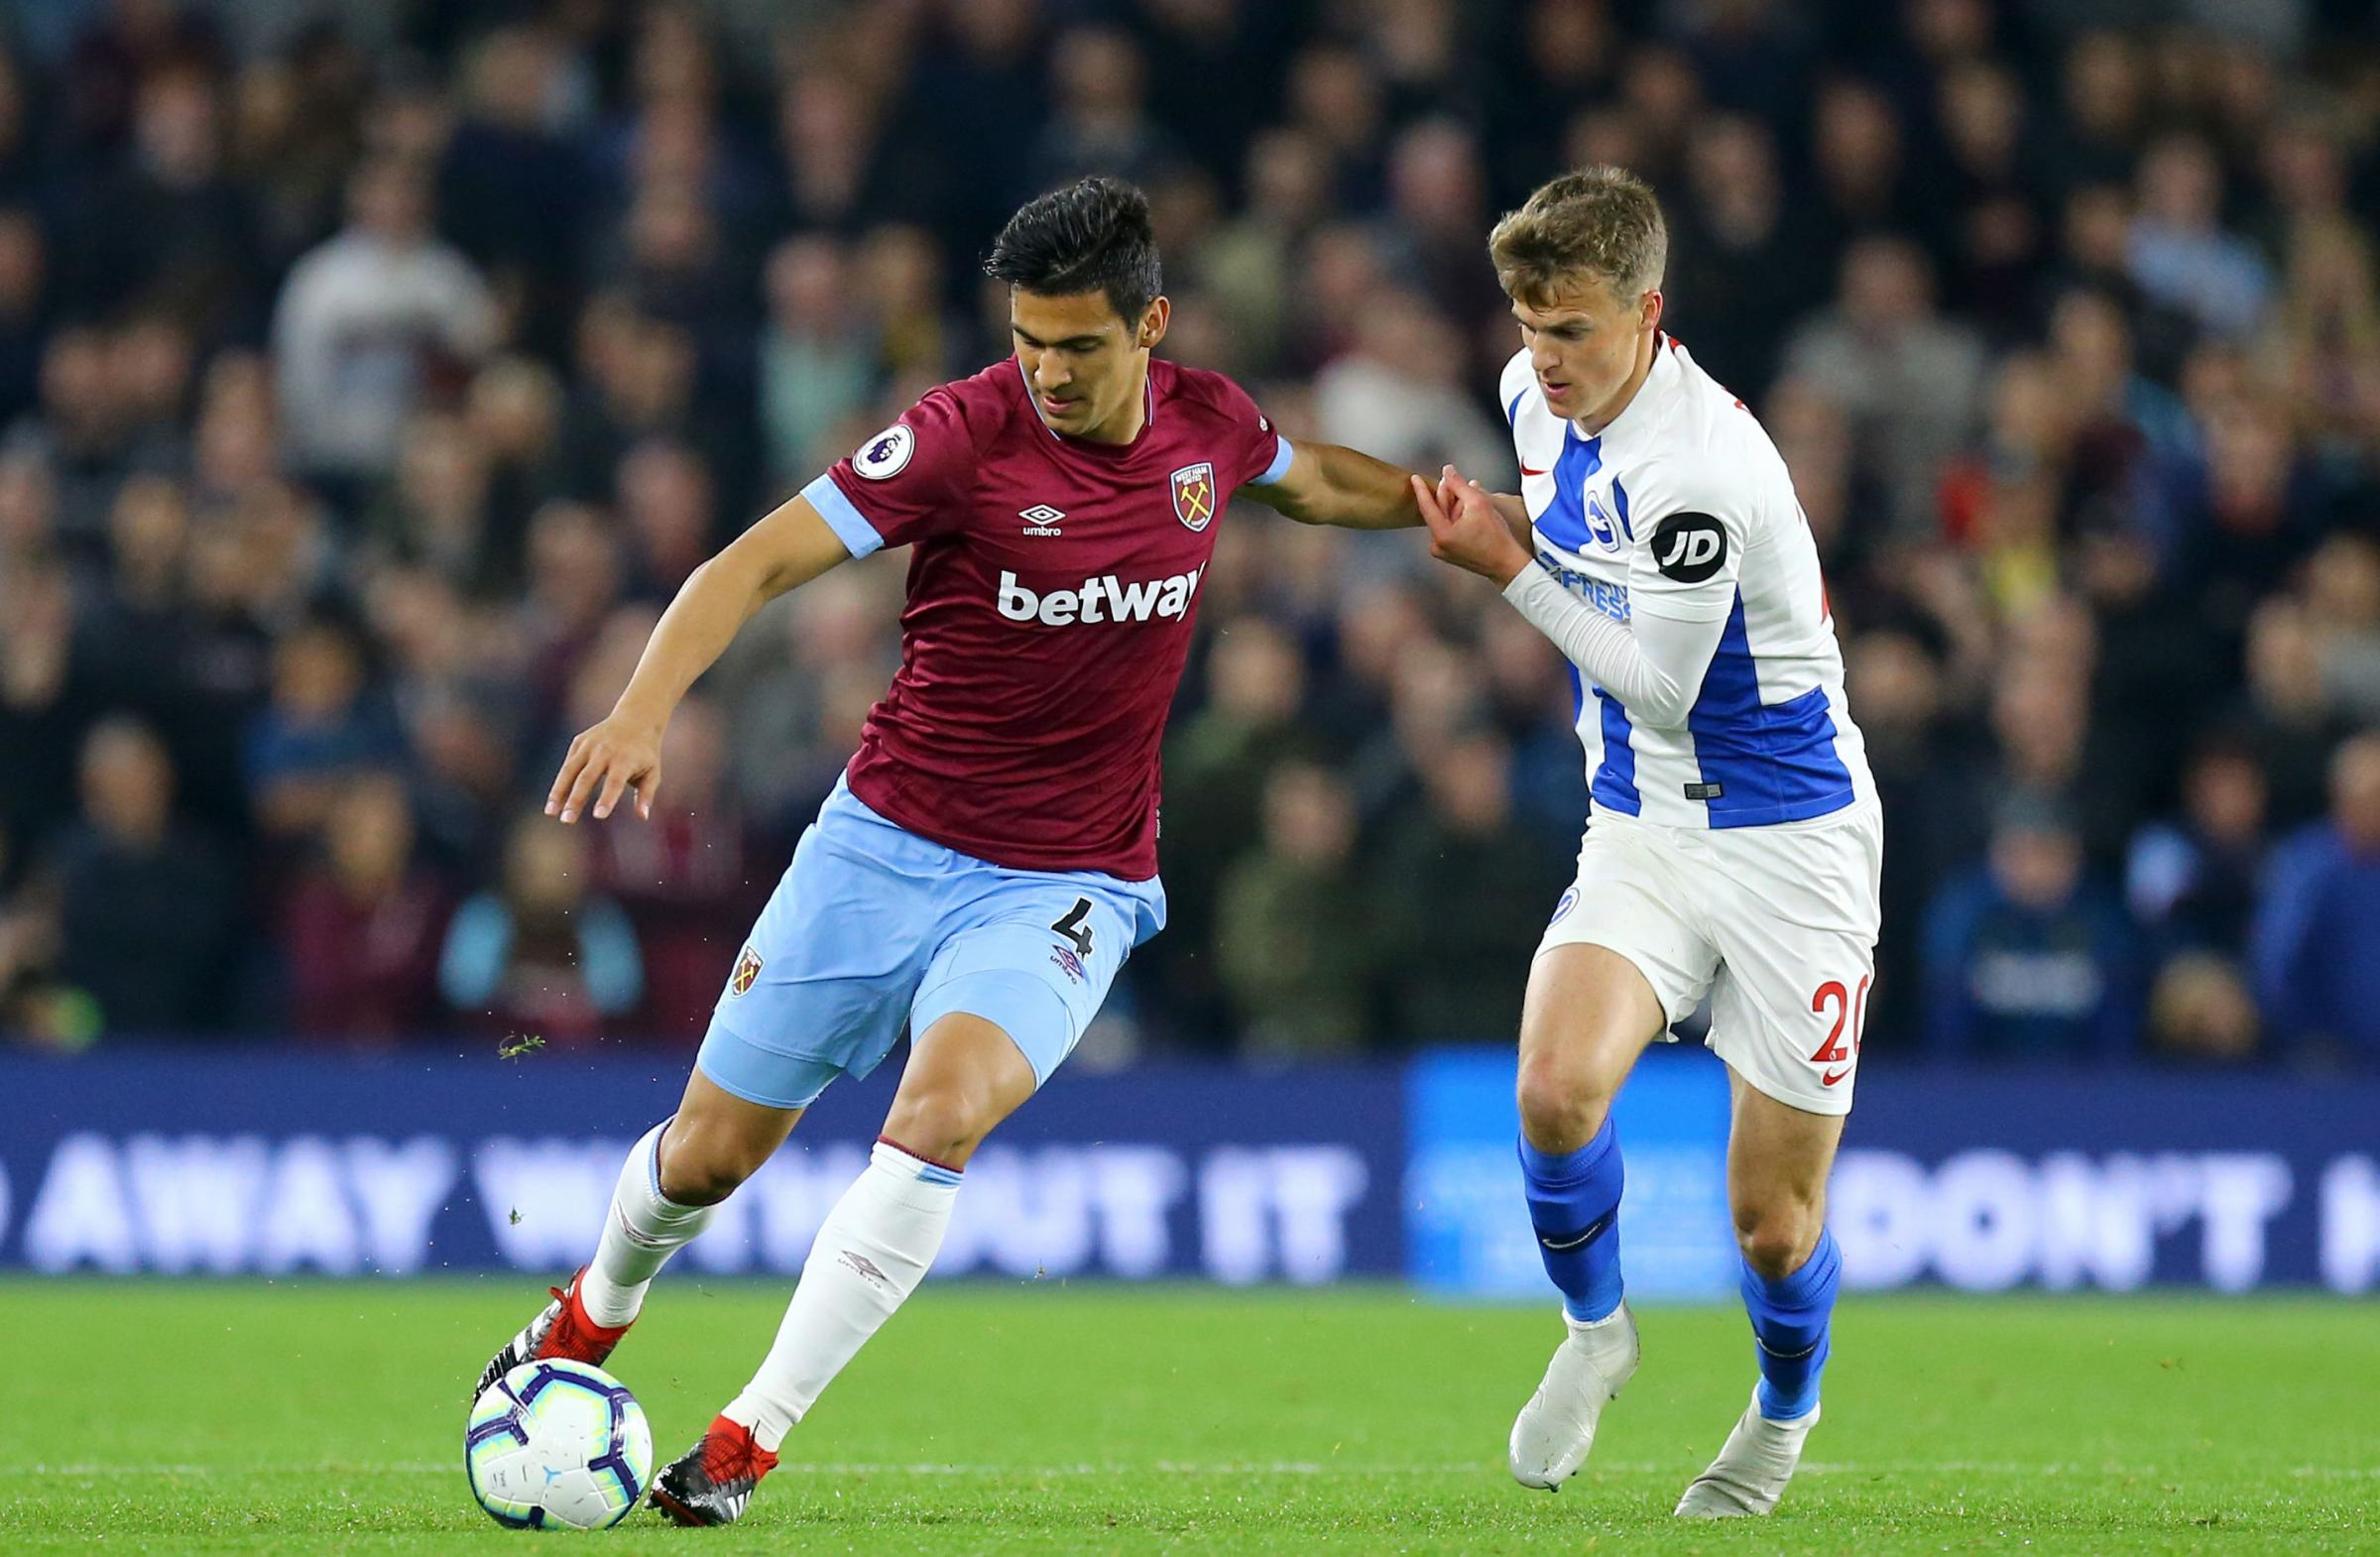 West Ham United's Fabian Balbuena (left) and Brighton & Hove Albion's Solly March battle for the ball during the Premier League match at the AMEX Stadium, Brighton. PRESS ASSOCIATION Photo. Picture date: Friday October 5, 2018. See PA story SO